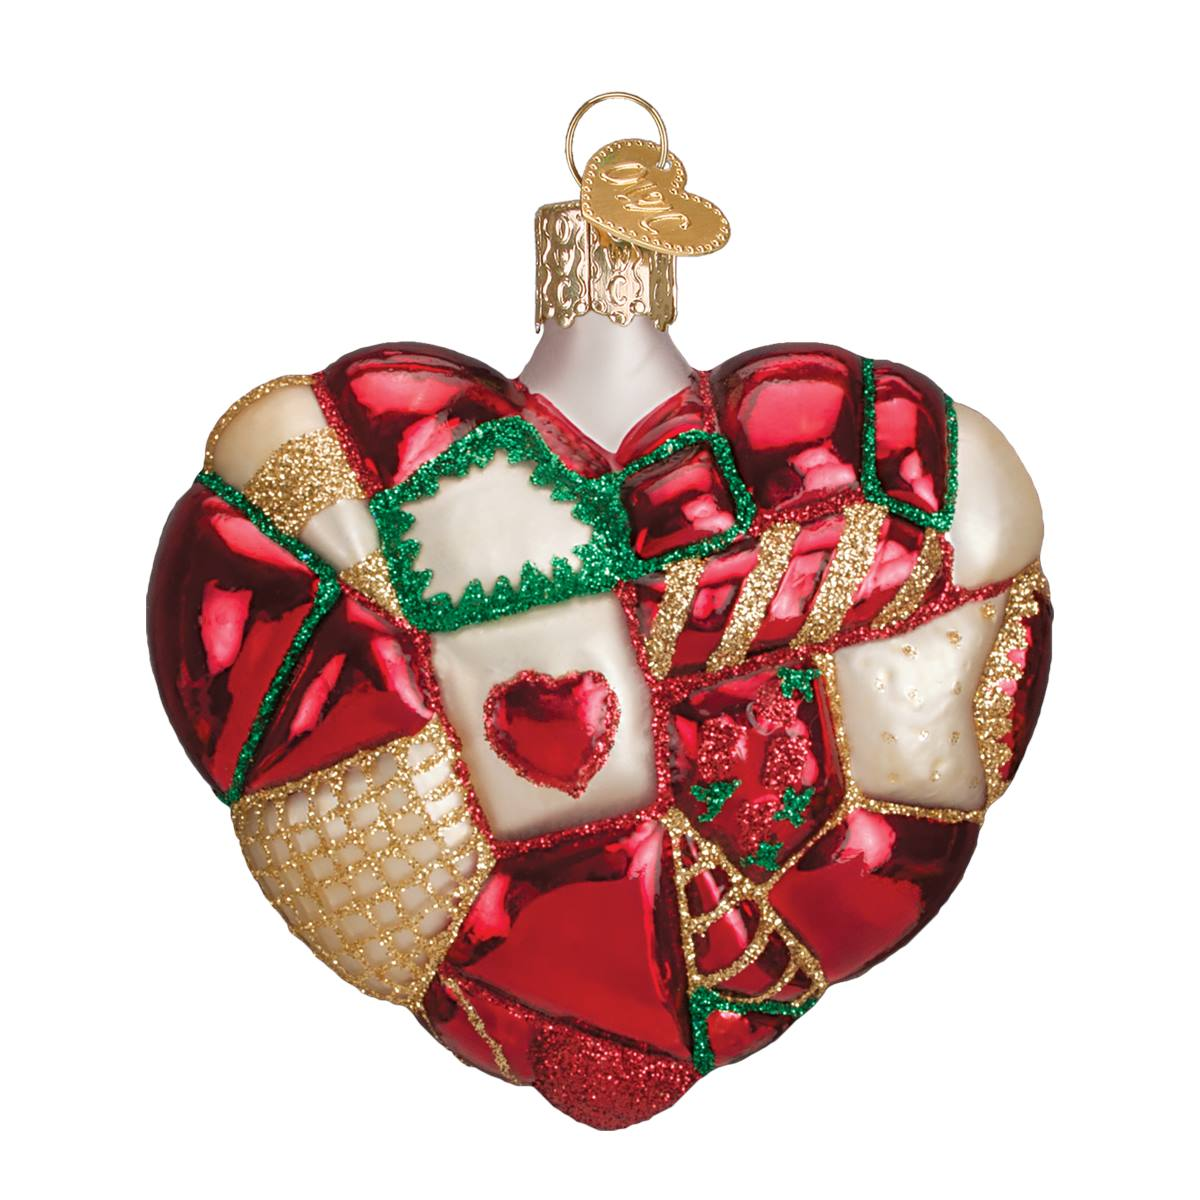 Patchwork Heart Ornament - Traditions